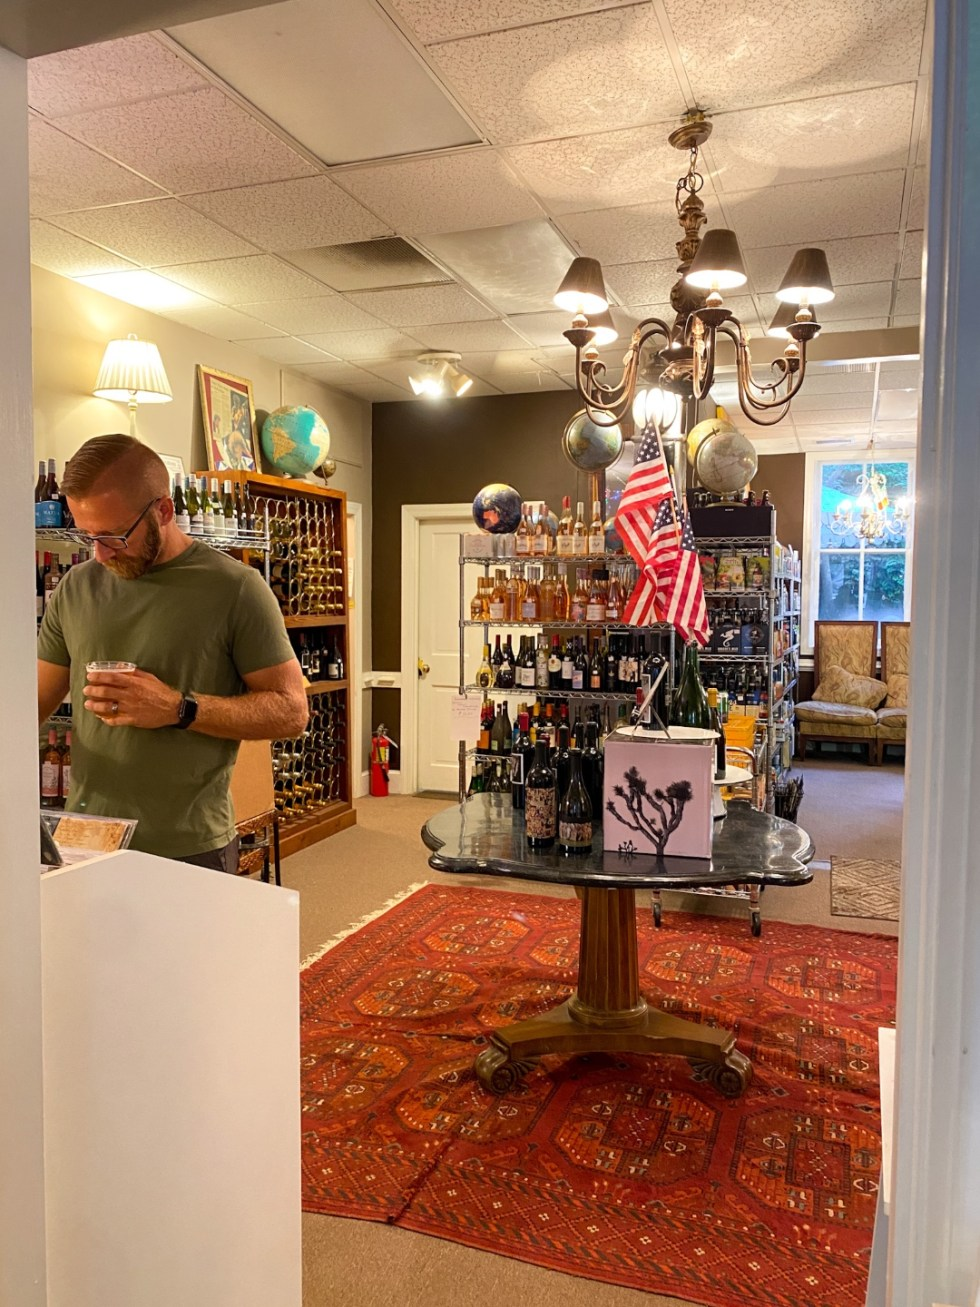 Top 10 Best Things to Do in Edenton, NC: A Complete Travel Guide - I'm Fixin' To - @imfixintoblog | Edenton Travel Guide by popular NC travel guid, I'm Fixin' To: image of a man looking at some bottles of wine.